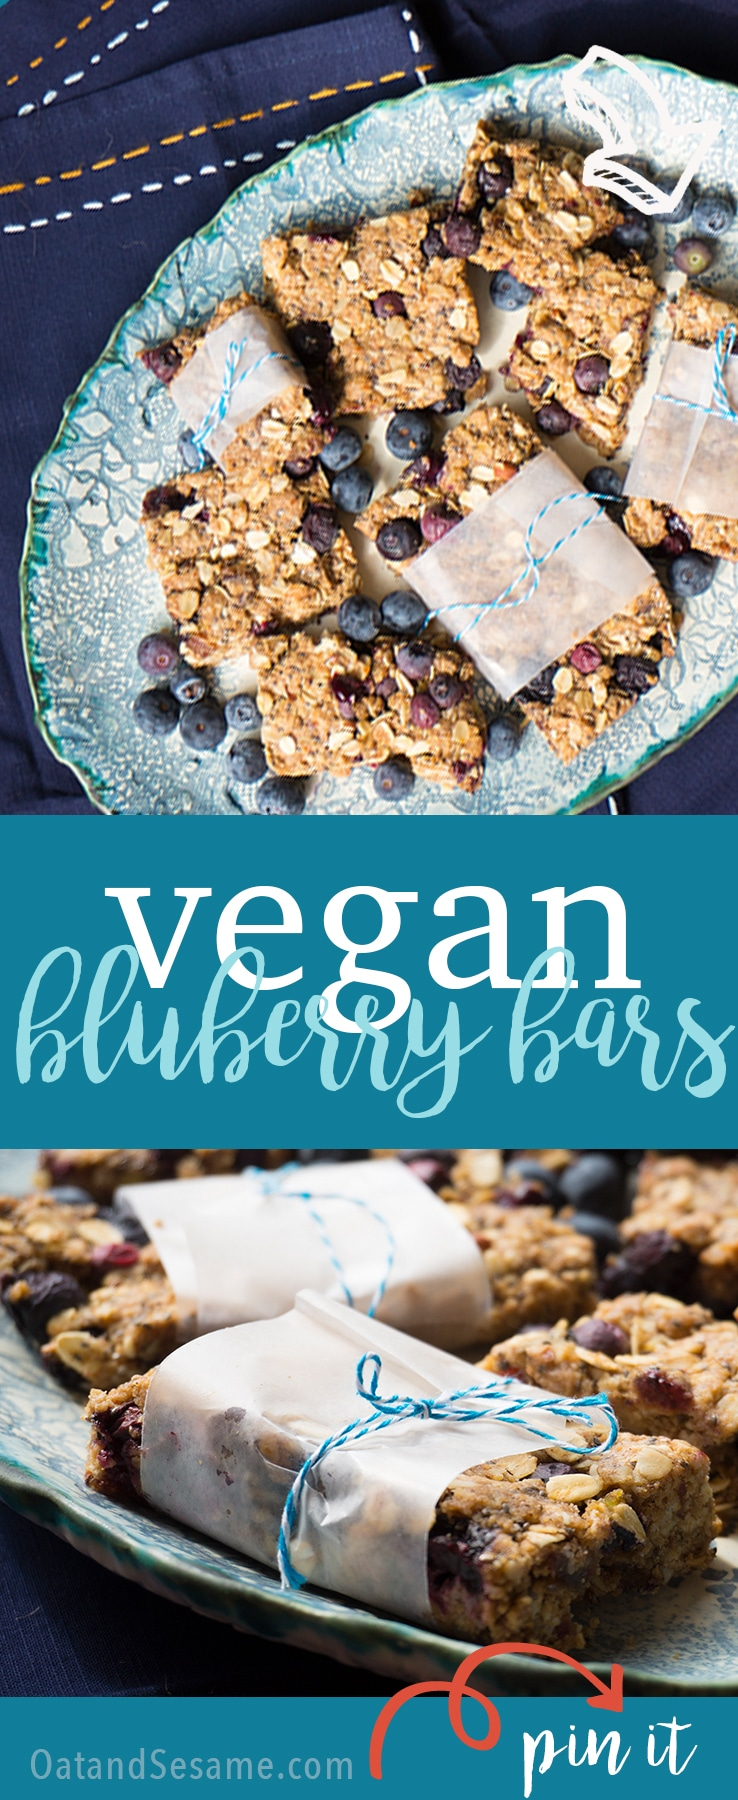 Blueberry Bars - healthy, delicious and vegan too! A great snack! | #VEGAN | #BLUEBERRY | #Recipes at OatandSesame.com